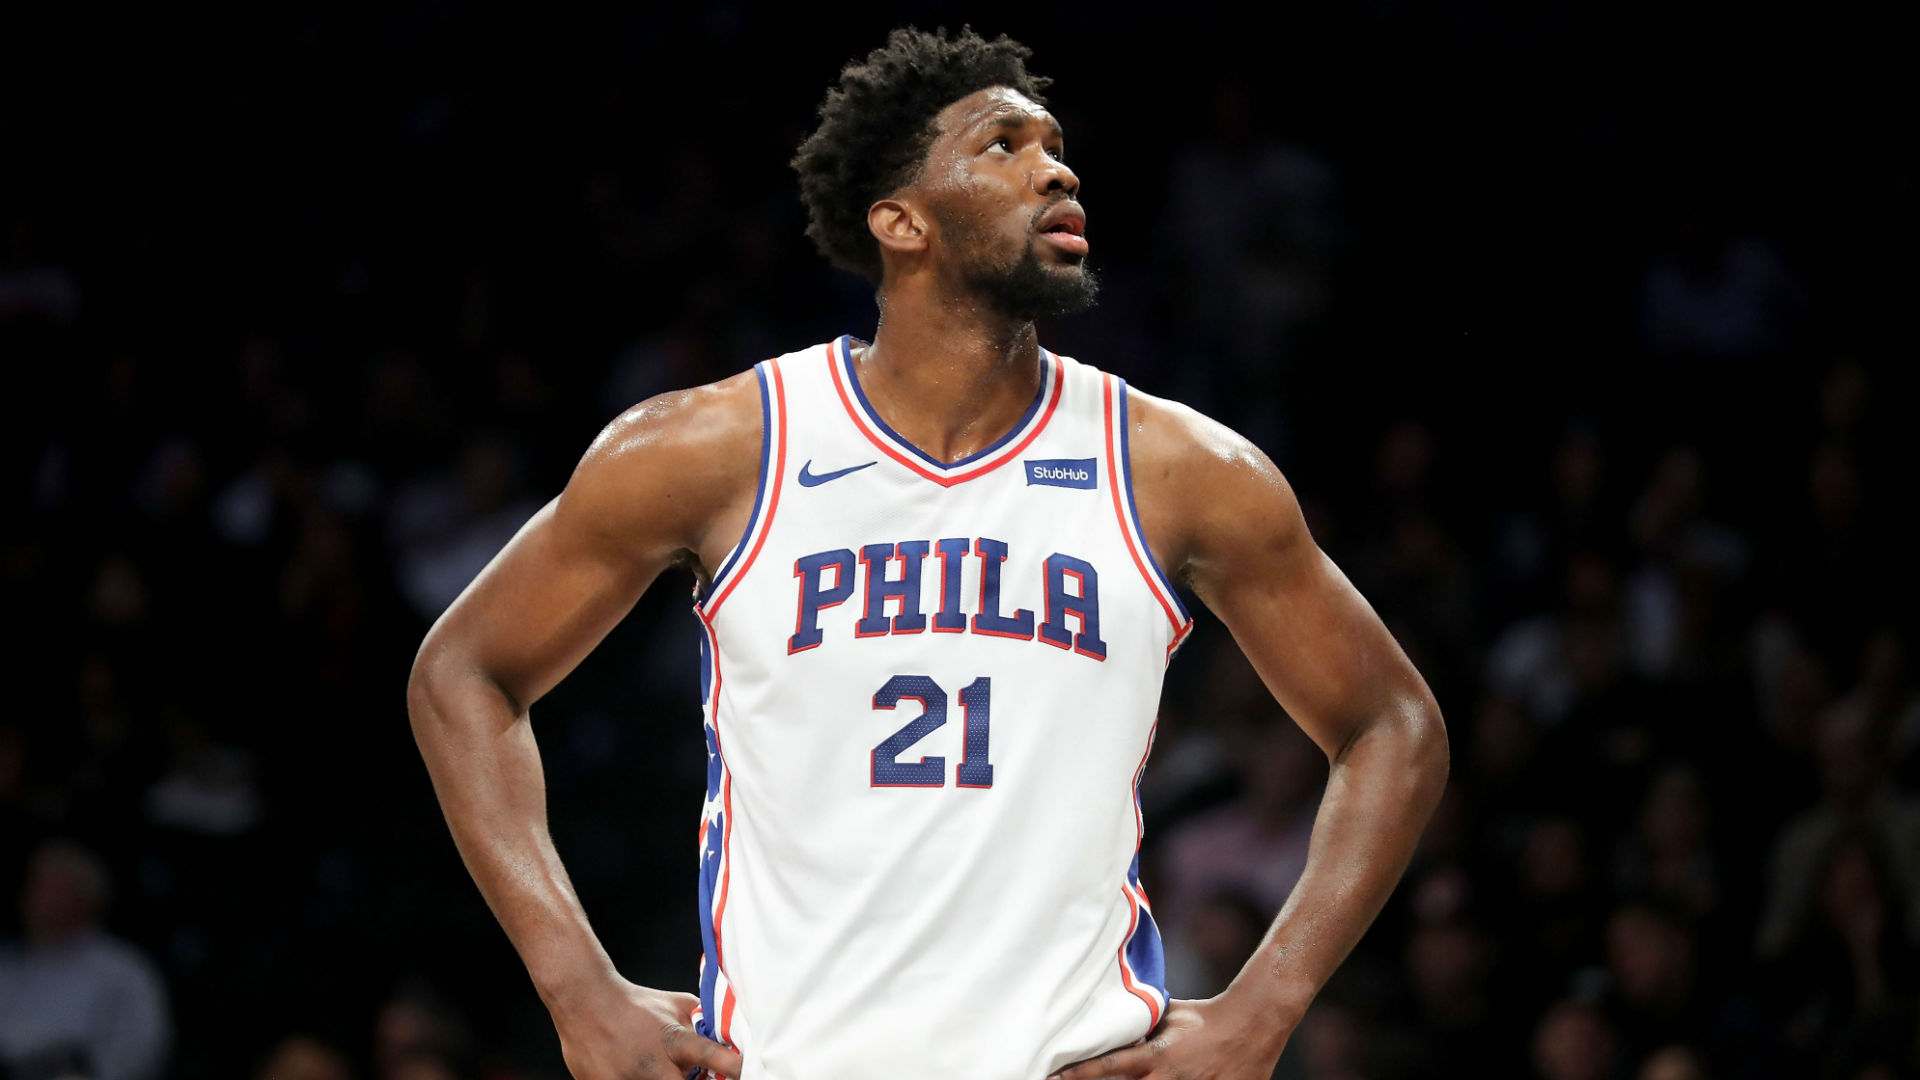 Joel Embiid injury update: 76ers star (knee) plans to return next week